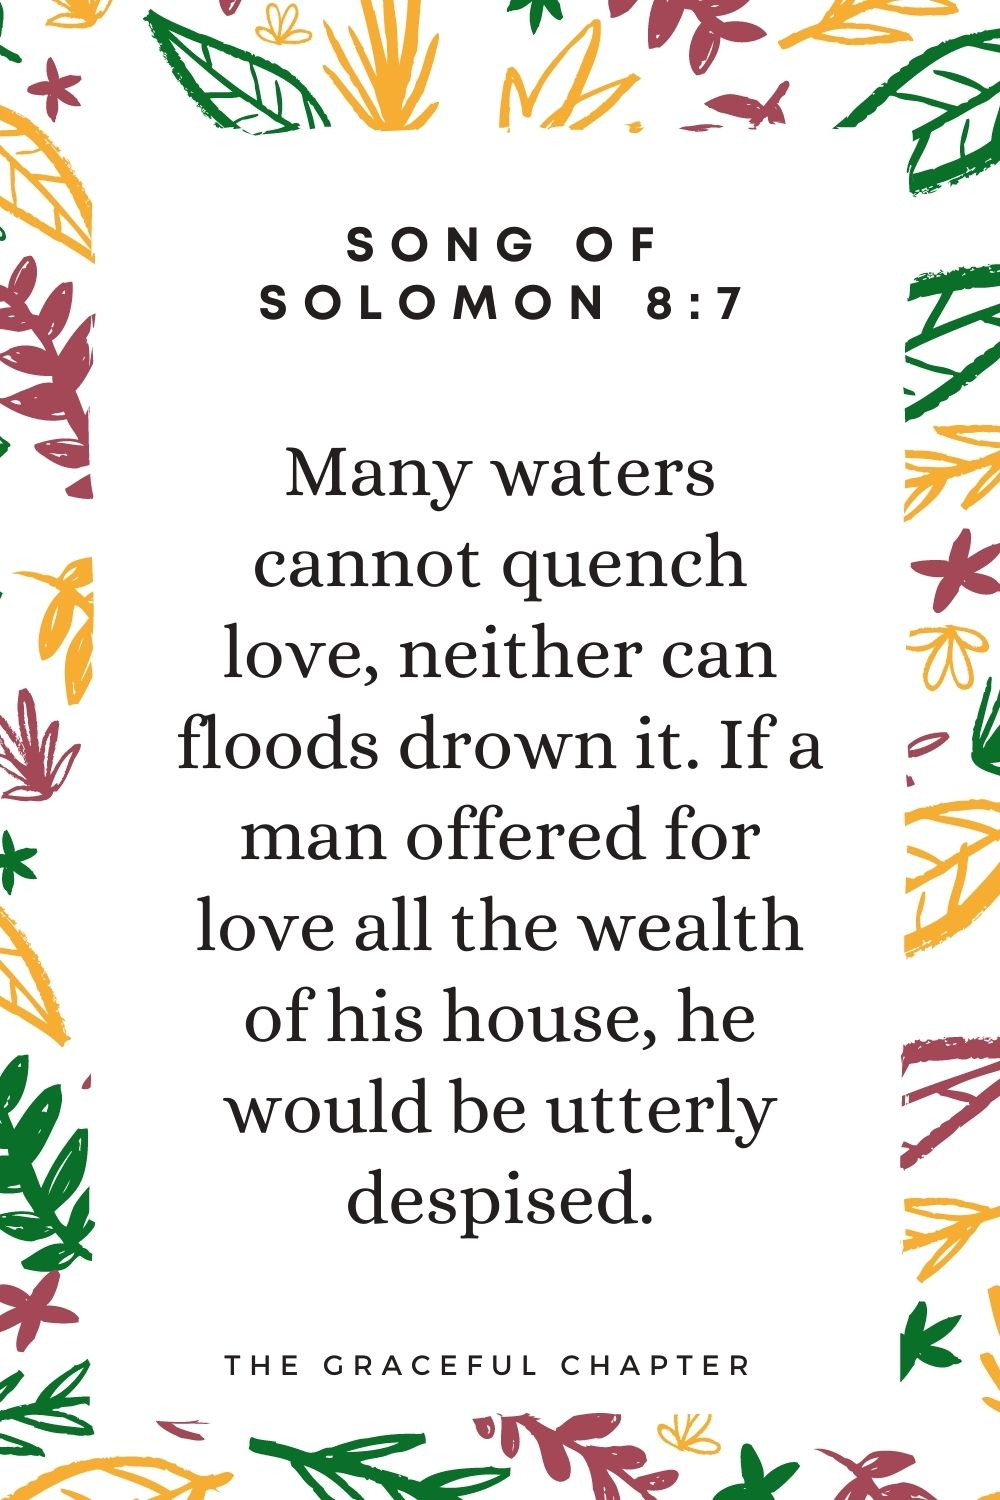 Many waters cannot quench love, neither can floods drown it.If a man offered for love all the wealth of his house, he would be utterly despised. Song Of Solomon 8:7